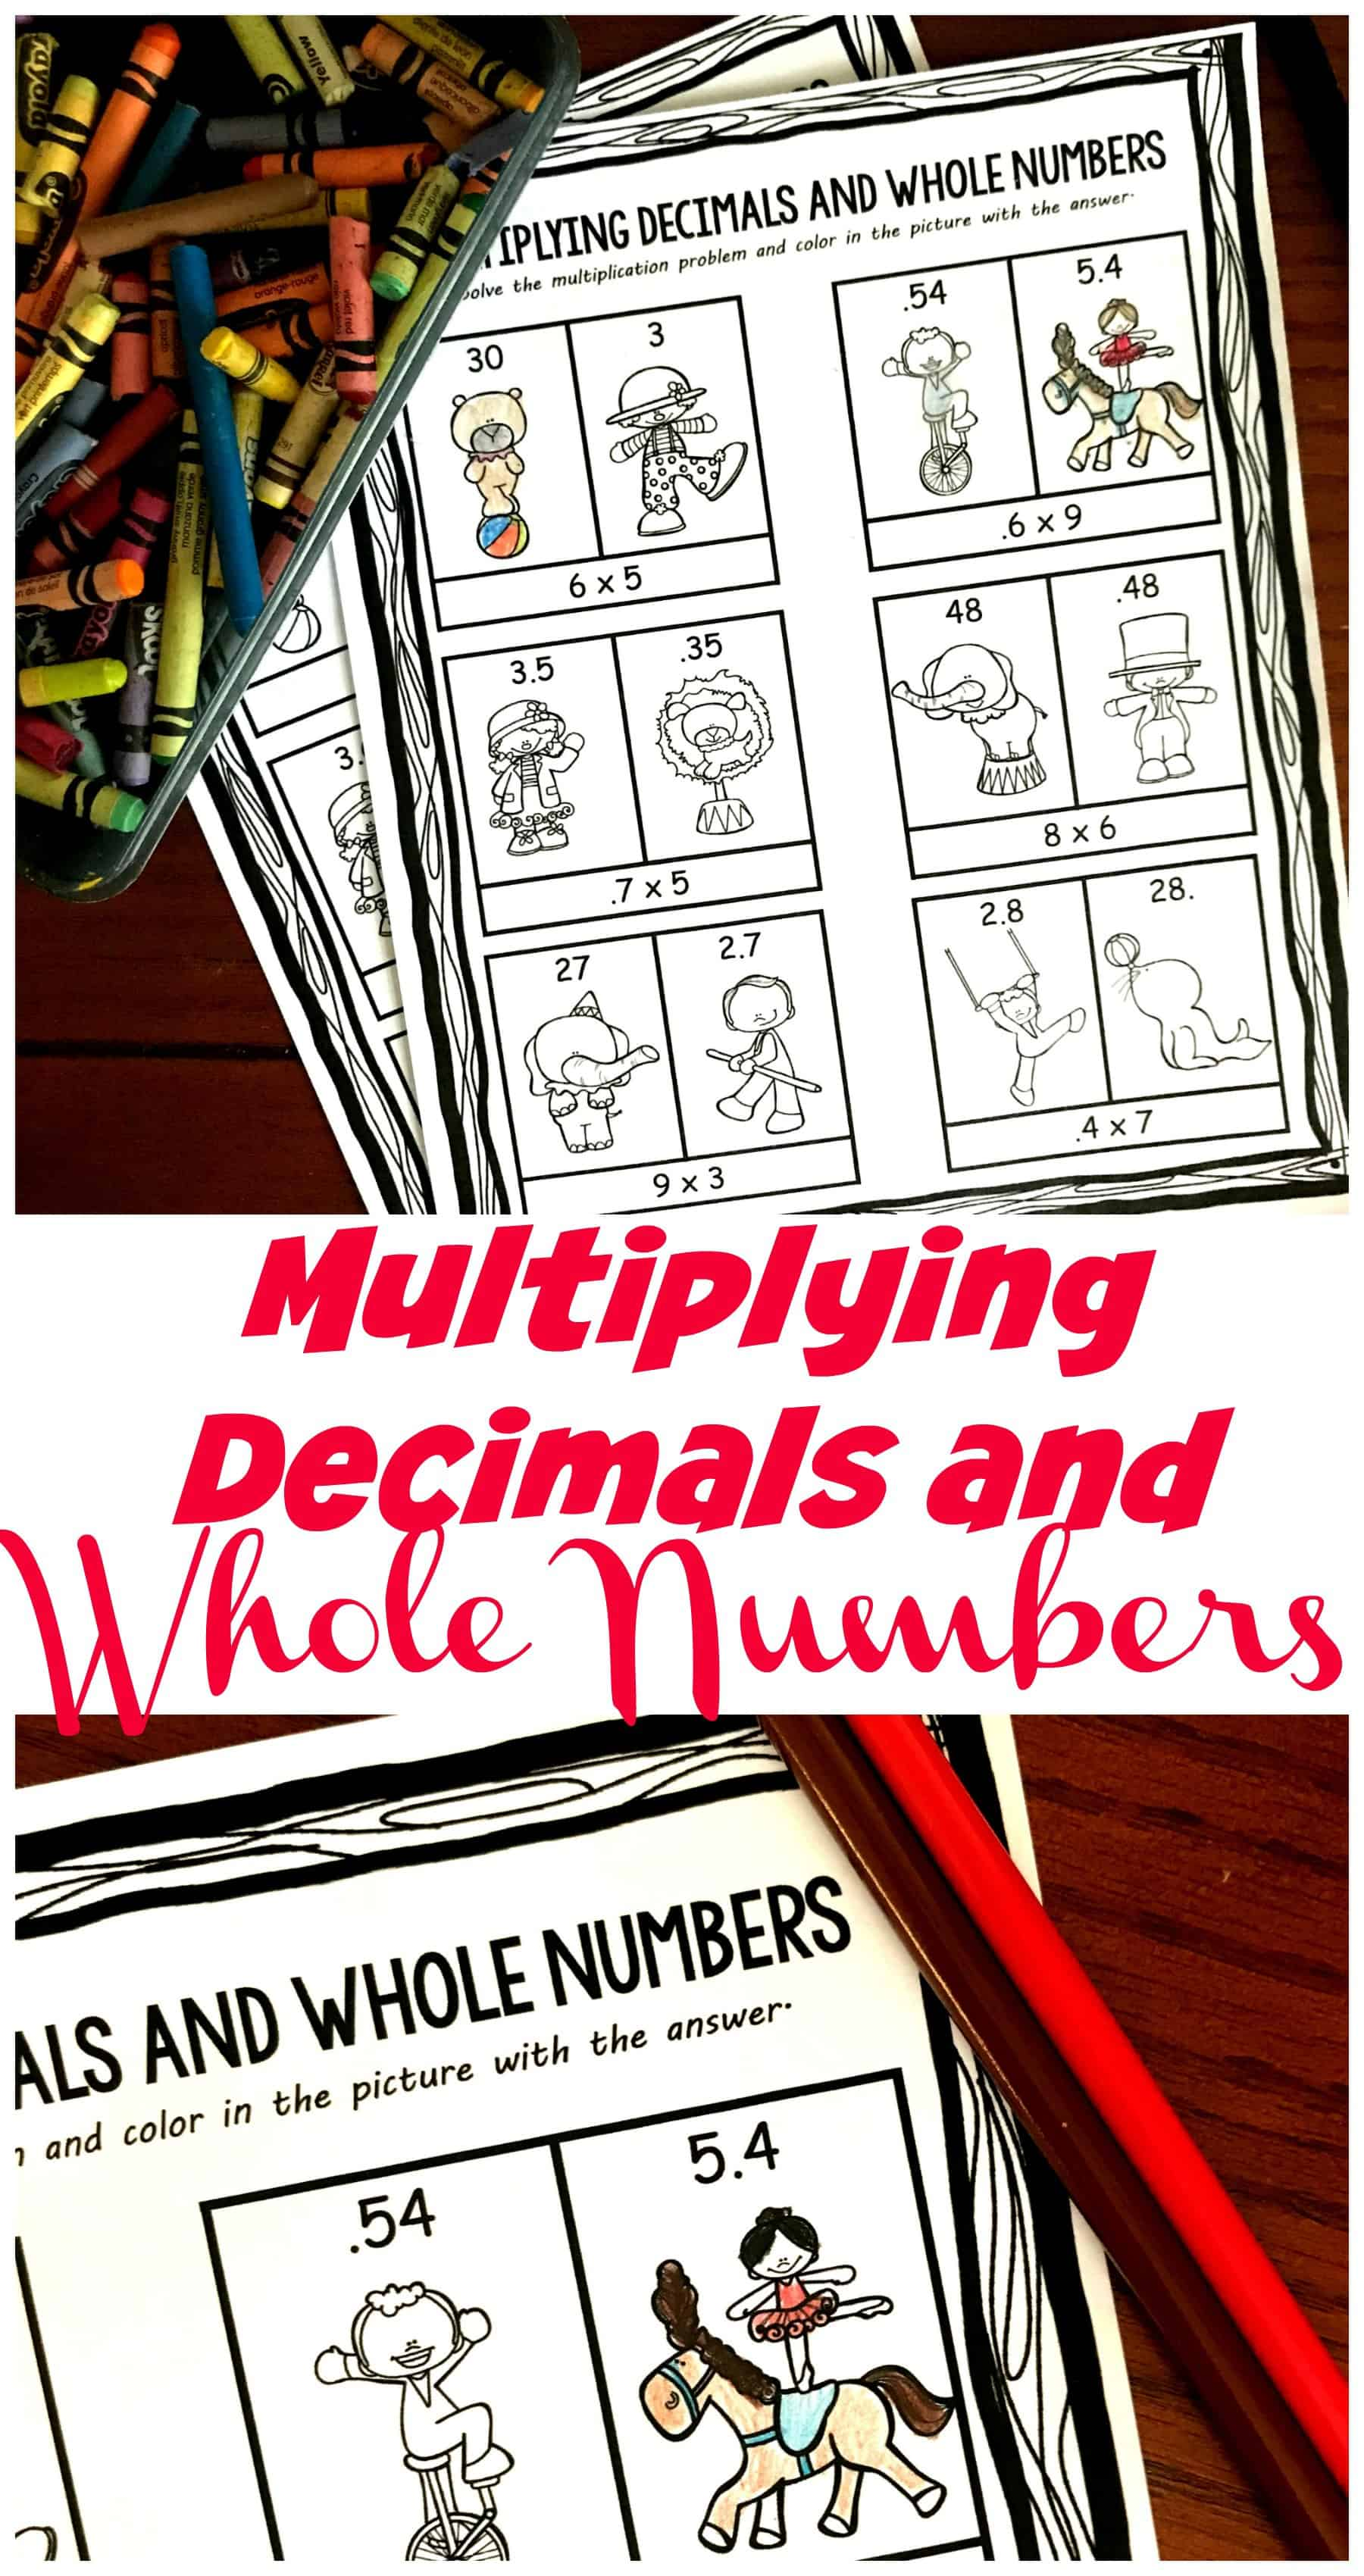 These free pages have children Multiplying Decimals and Whole Numbers (.2 x 9) and then coloring in the correct answer. Focuses on where the decimal should go